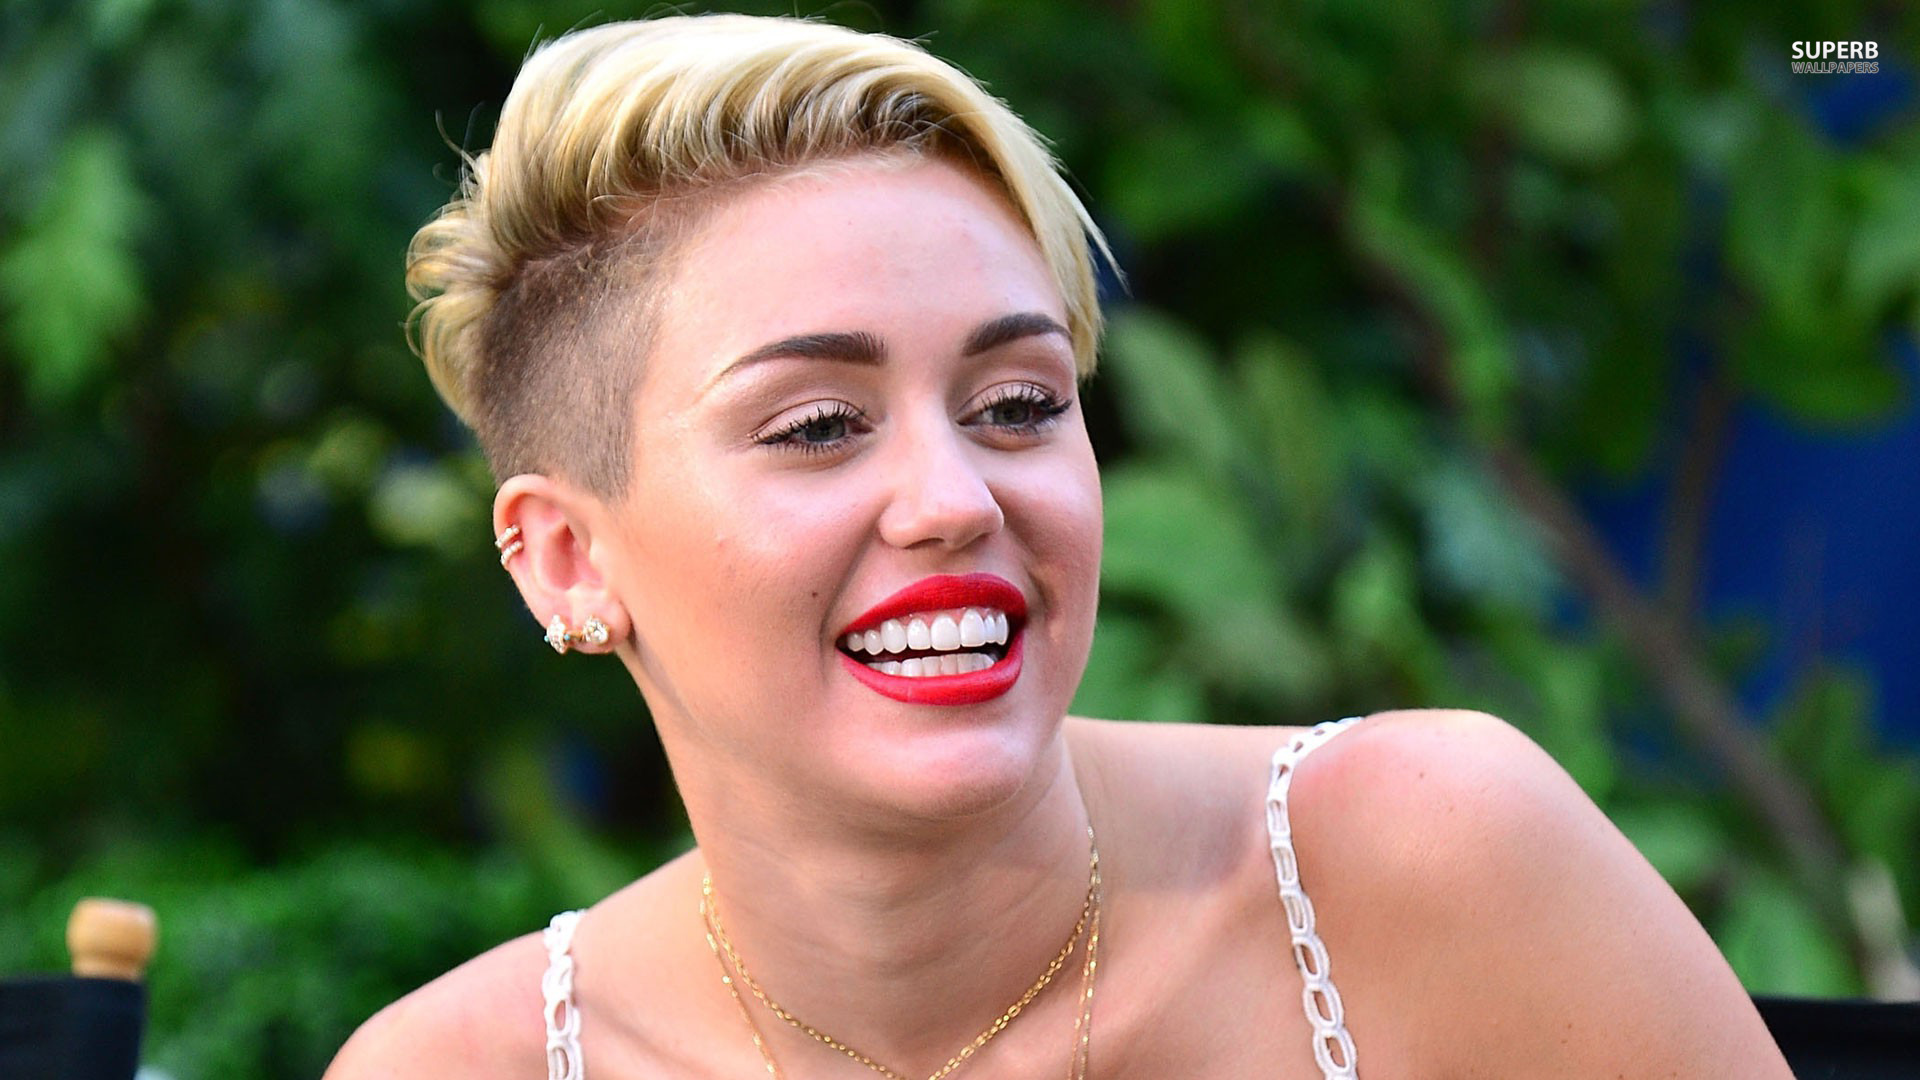 miley cyrus hd images | wallpapersjpg